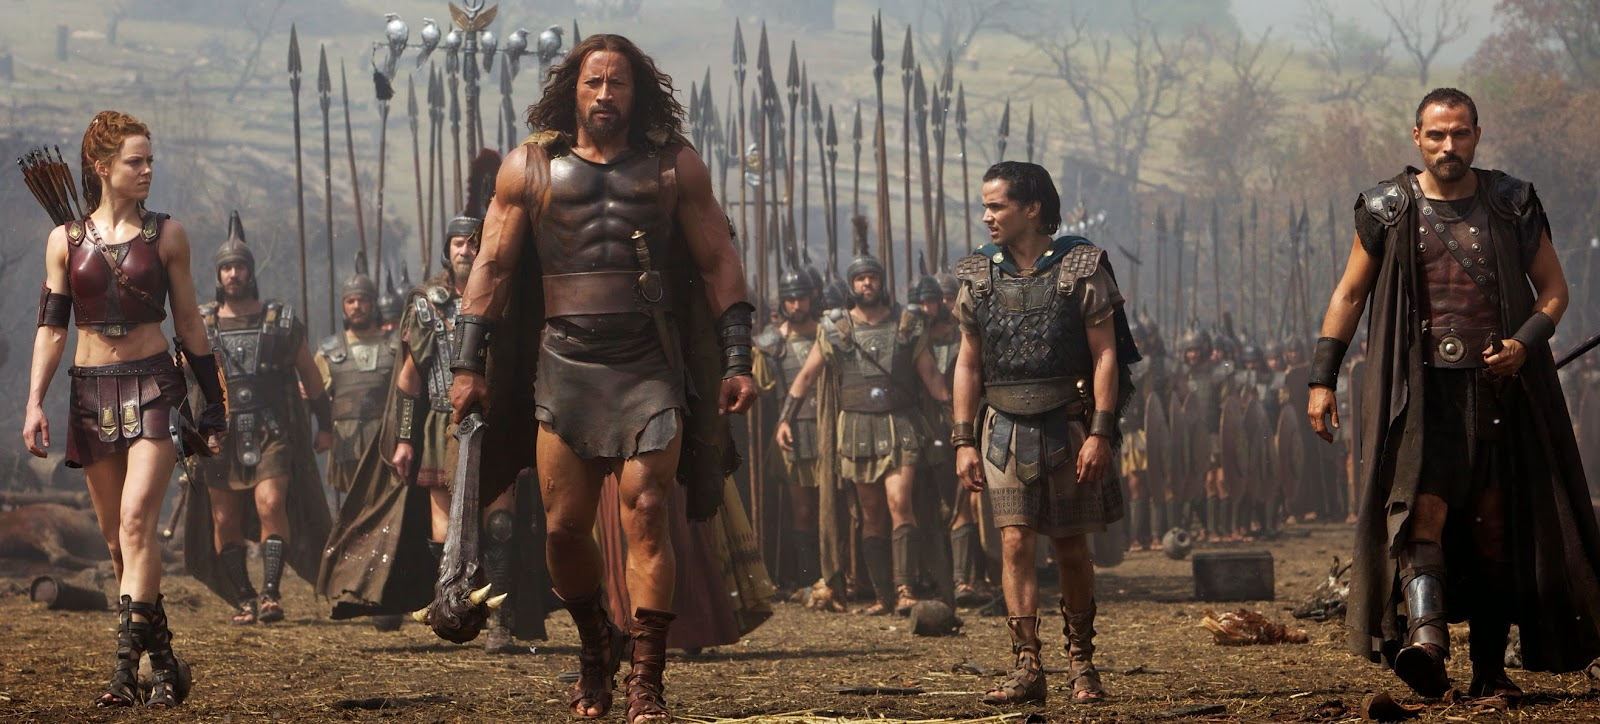 a review of the story of king agamemnon According to greek mythology, agamemnon was the king of mycenae, a kingdom  of legendary greece the leader of the greeks in the trojan war, he is one of.